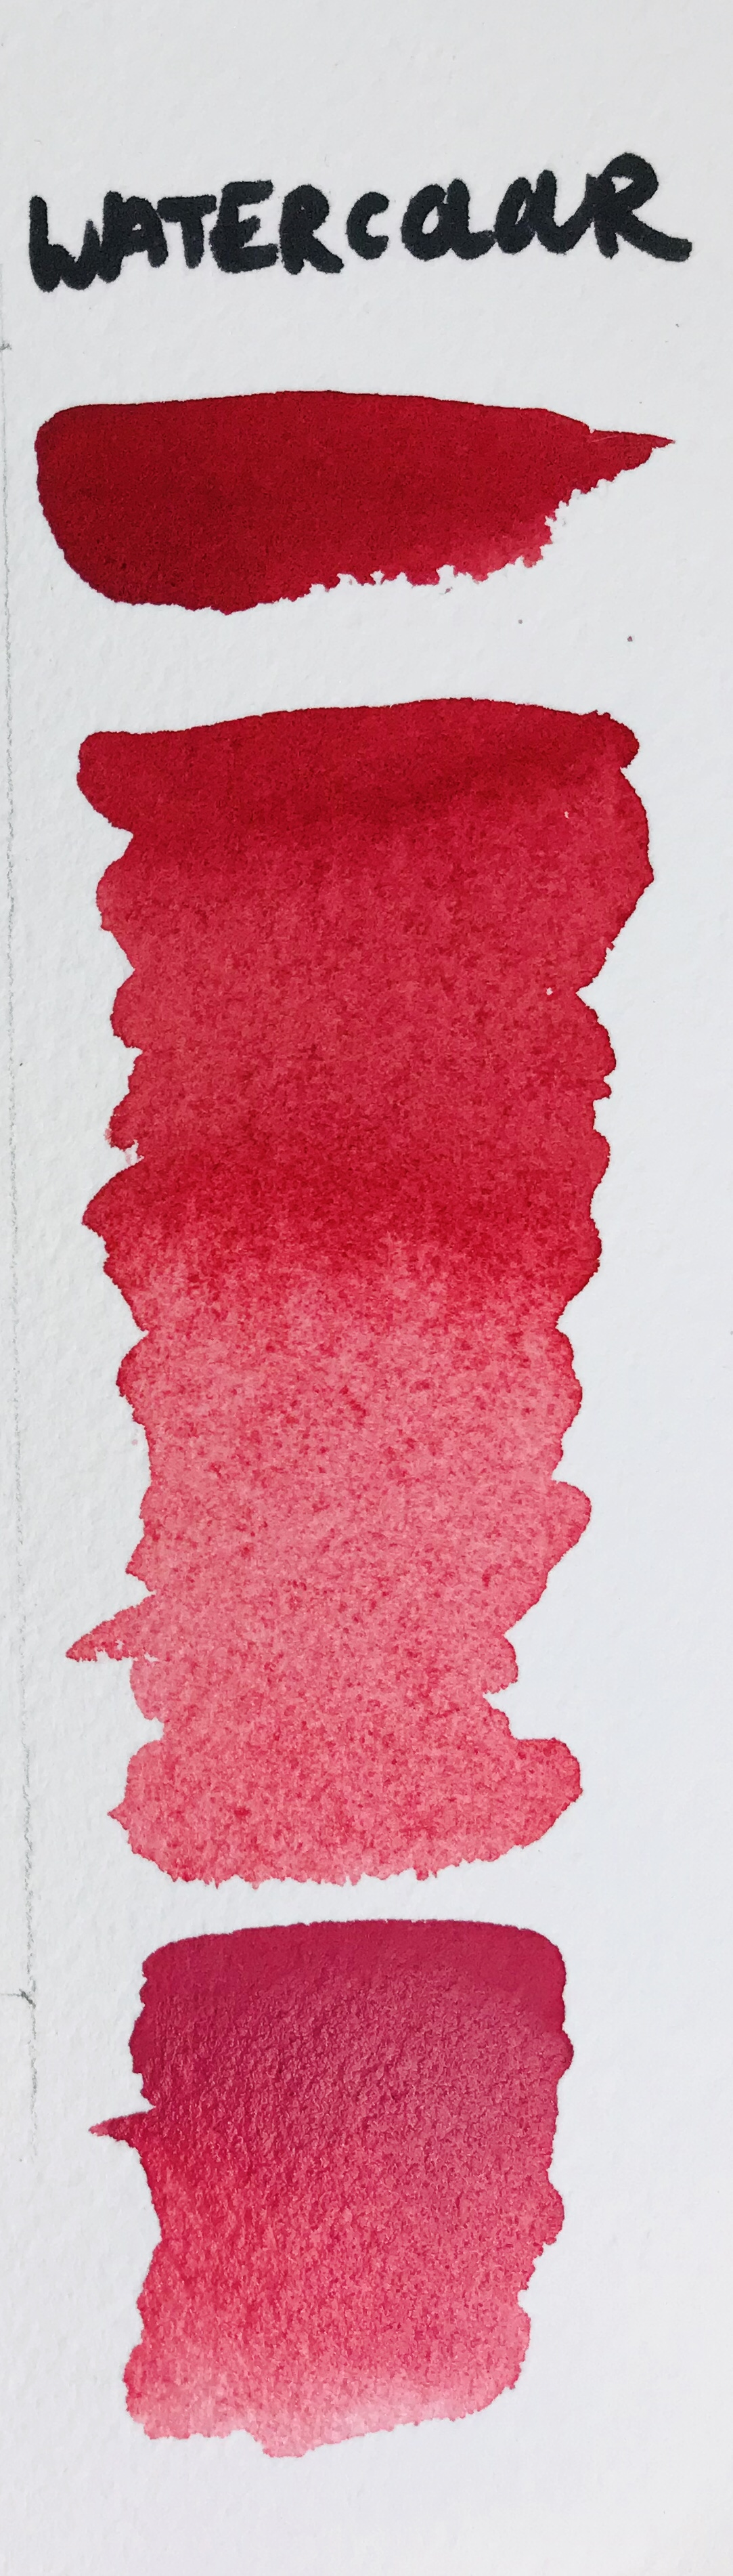 Watercolour paint swatch